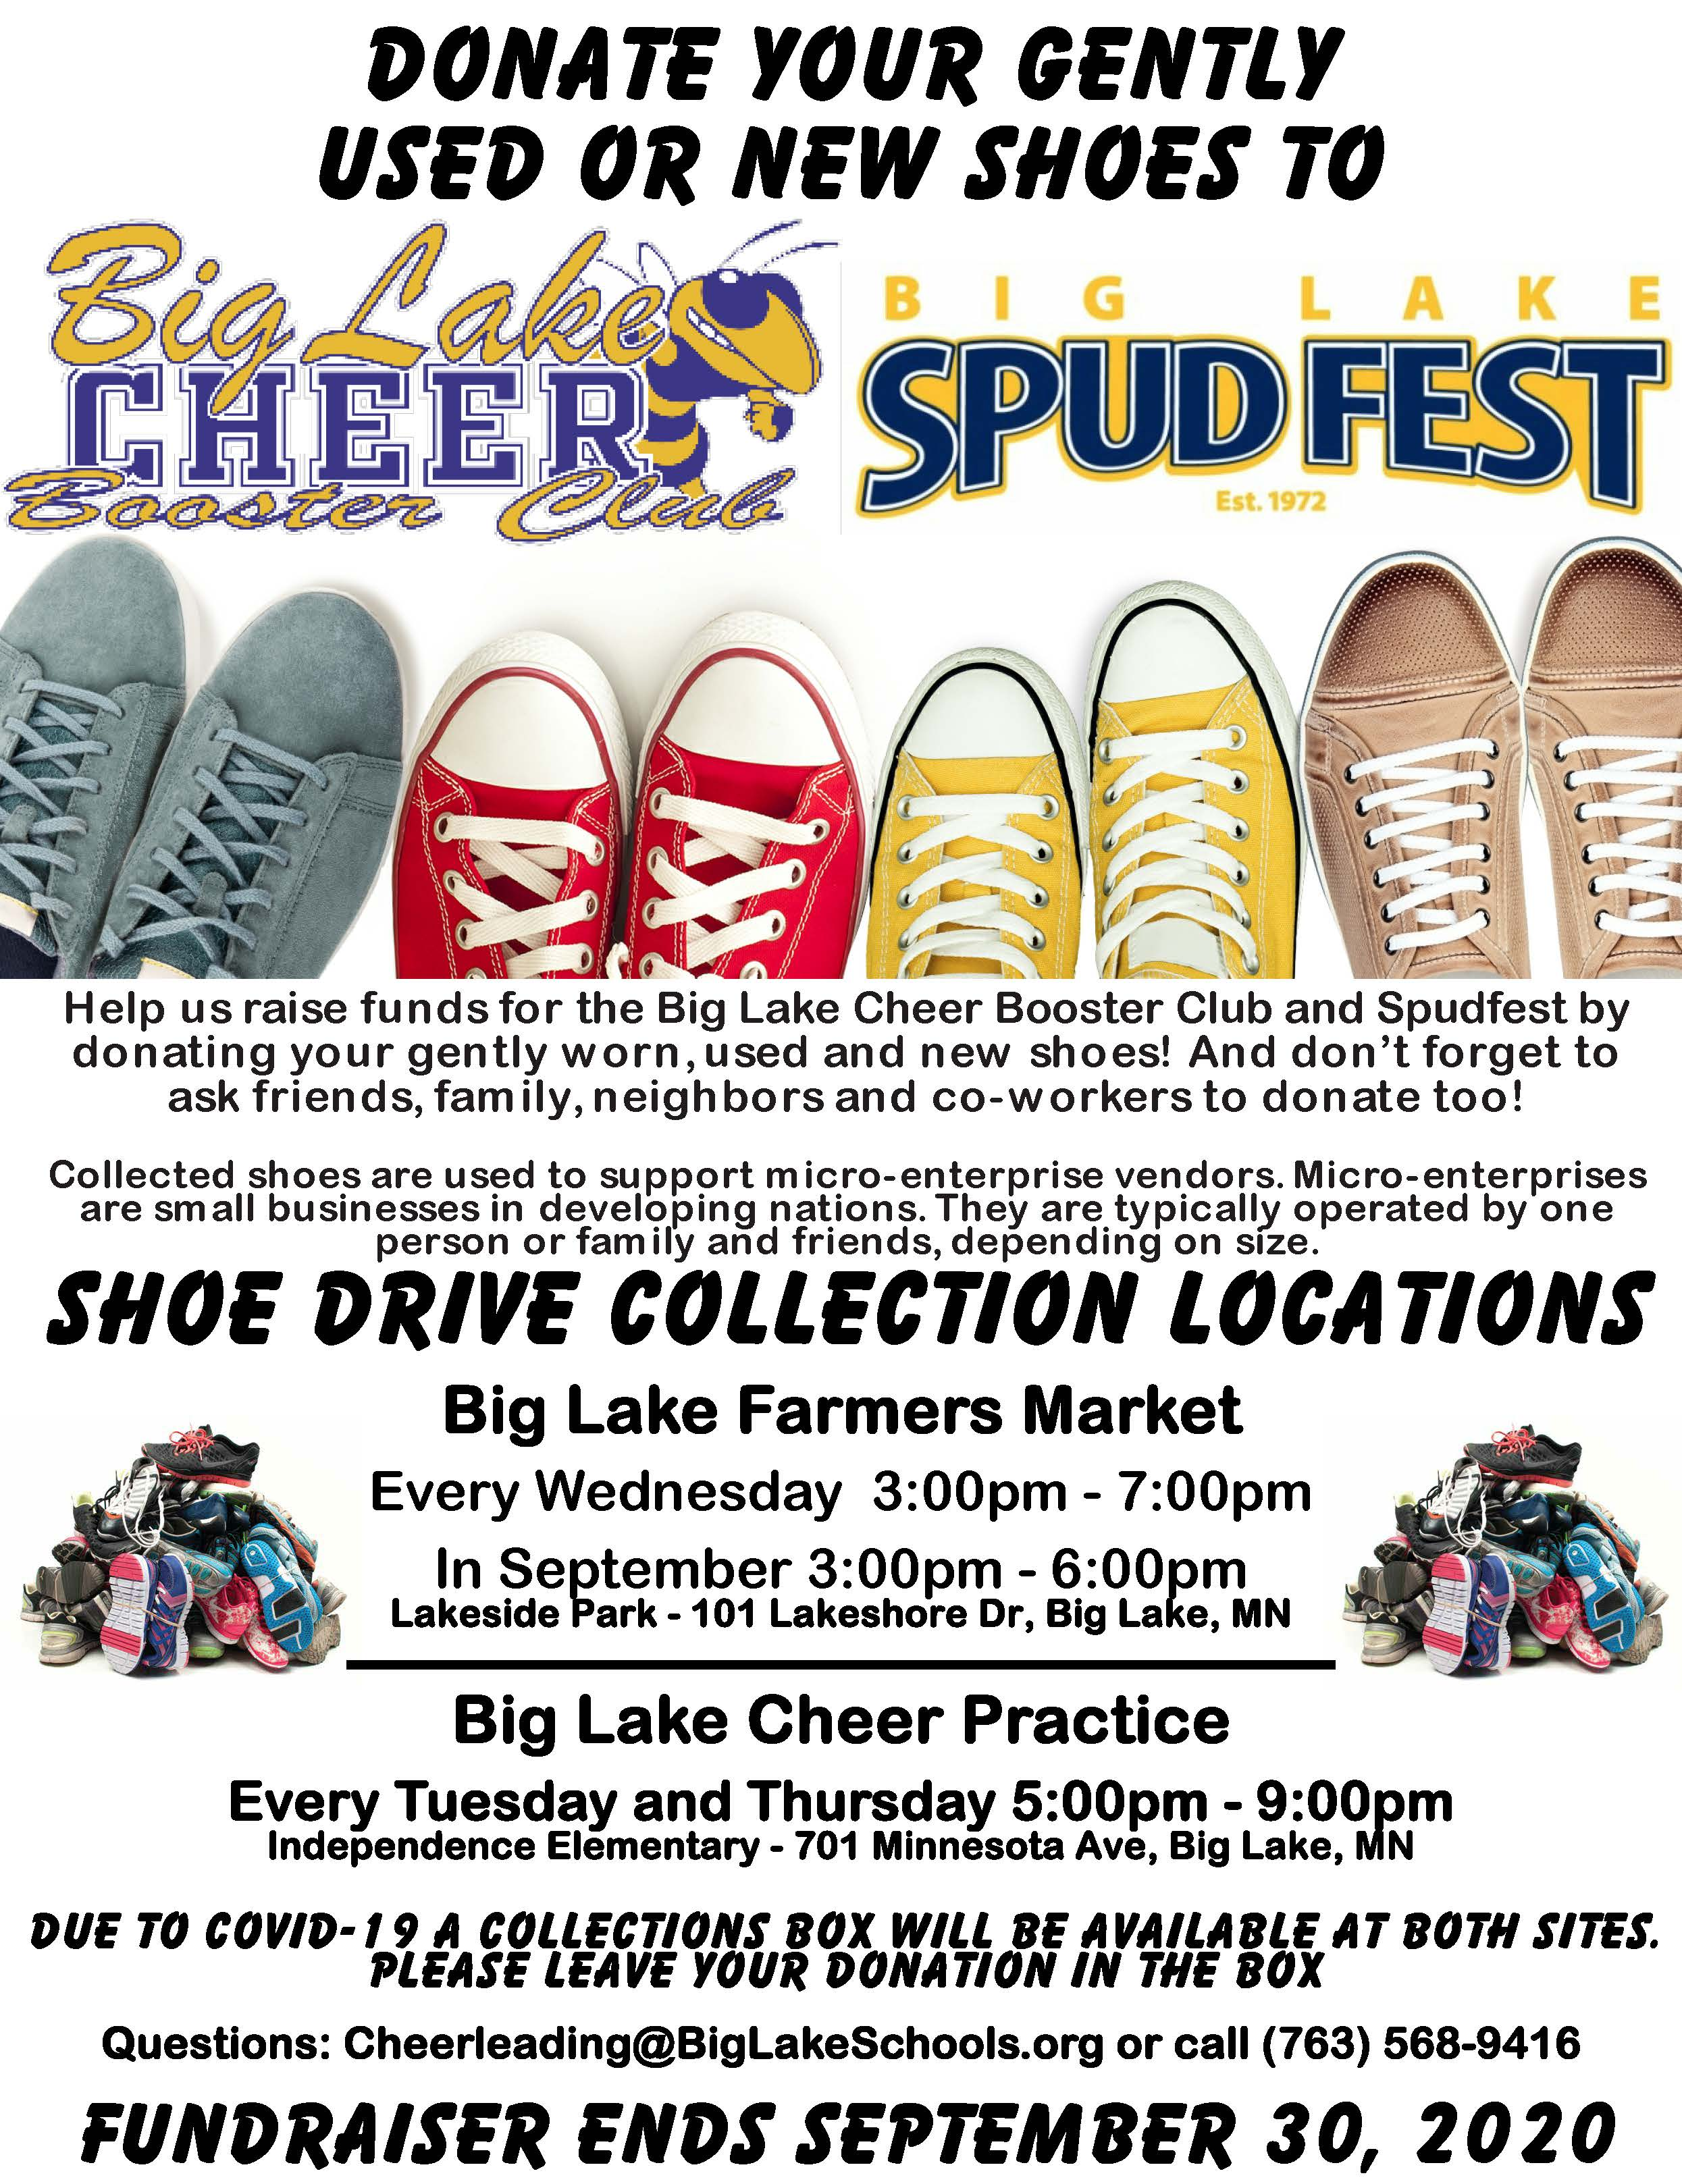 Shoe Drive Fundraiser Flyer - Cheerleading and Spud Fest.pdf